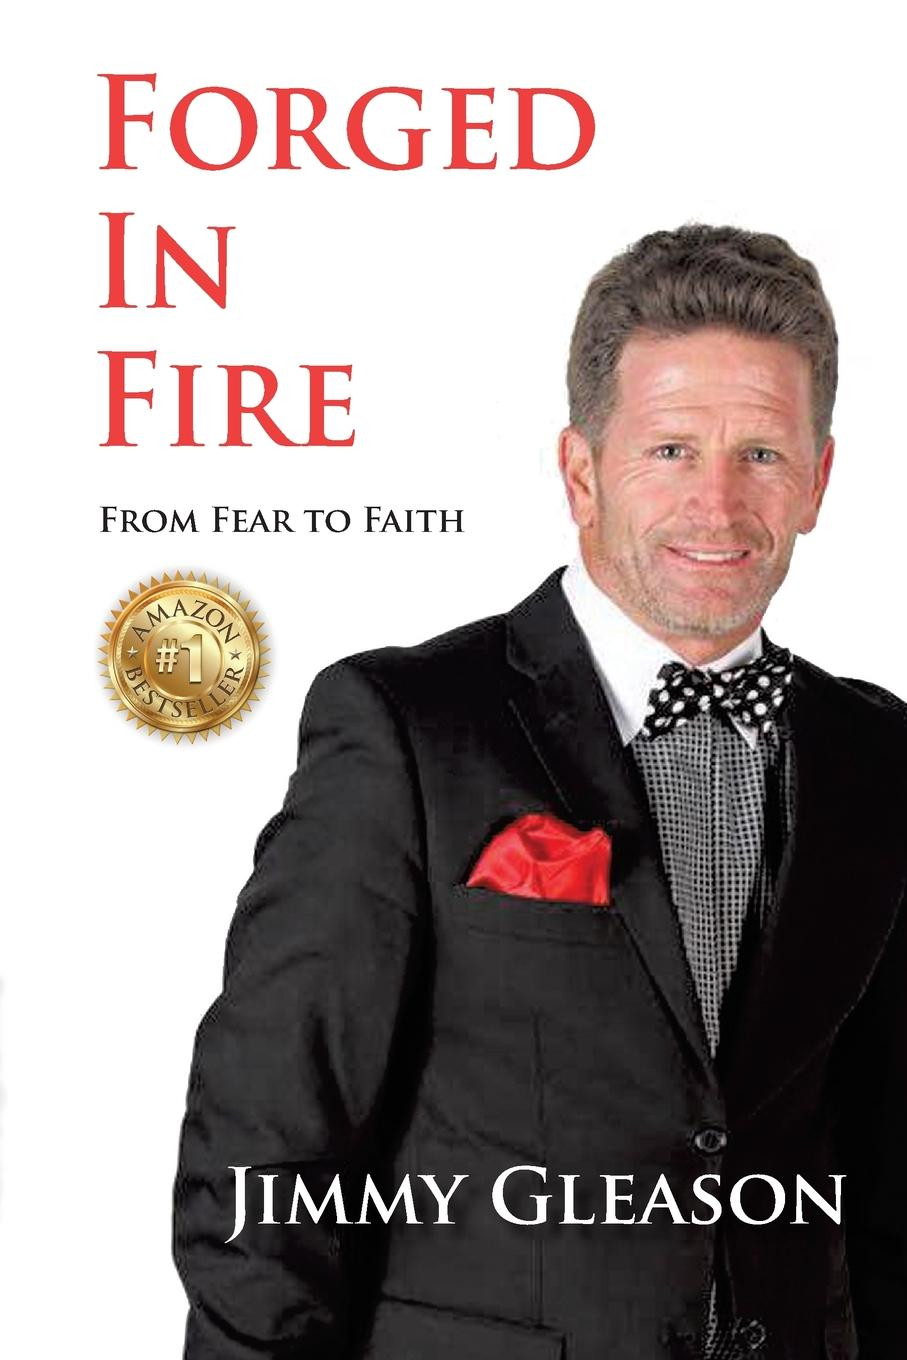 Jimmy Gleason Forged In Fire. From Fear to Faith finding faith